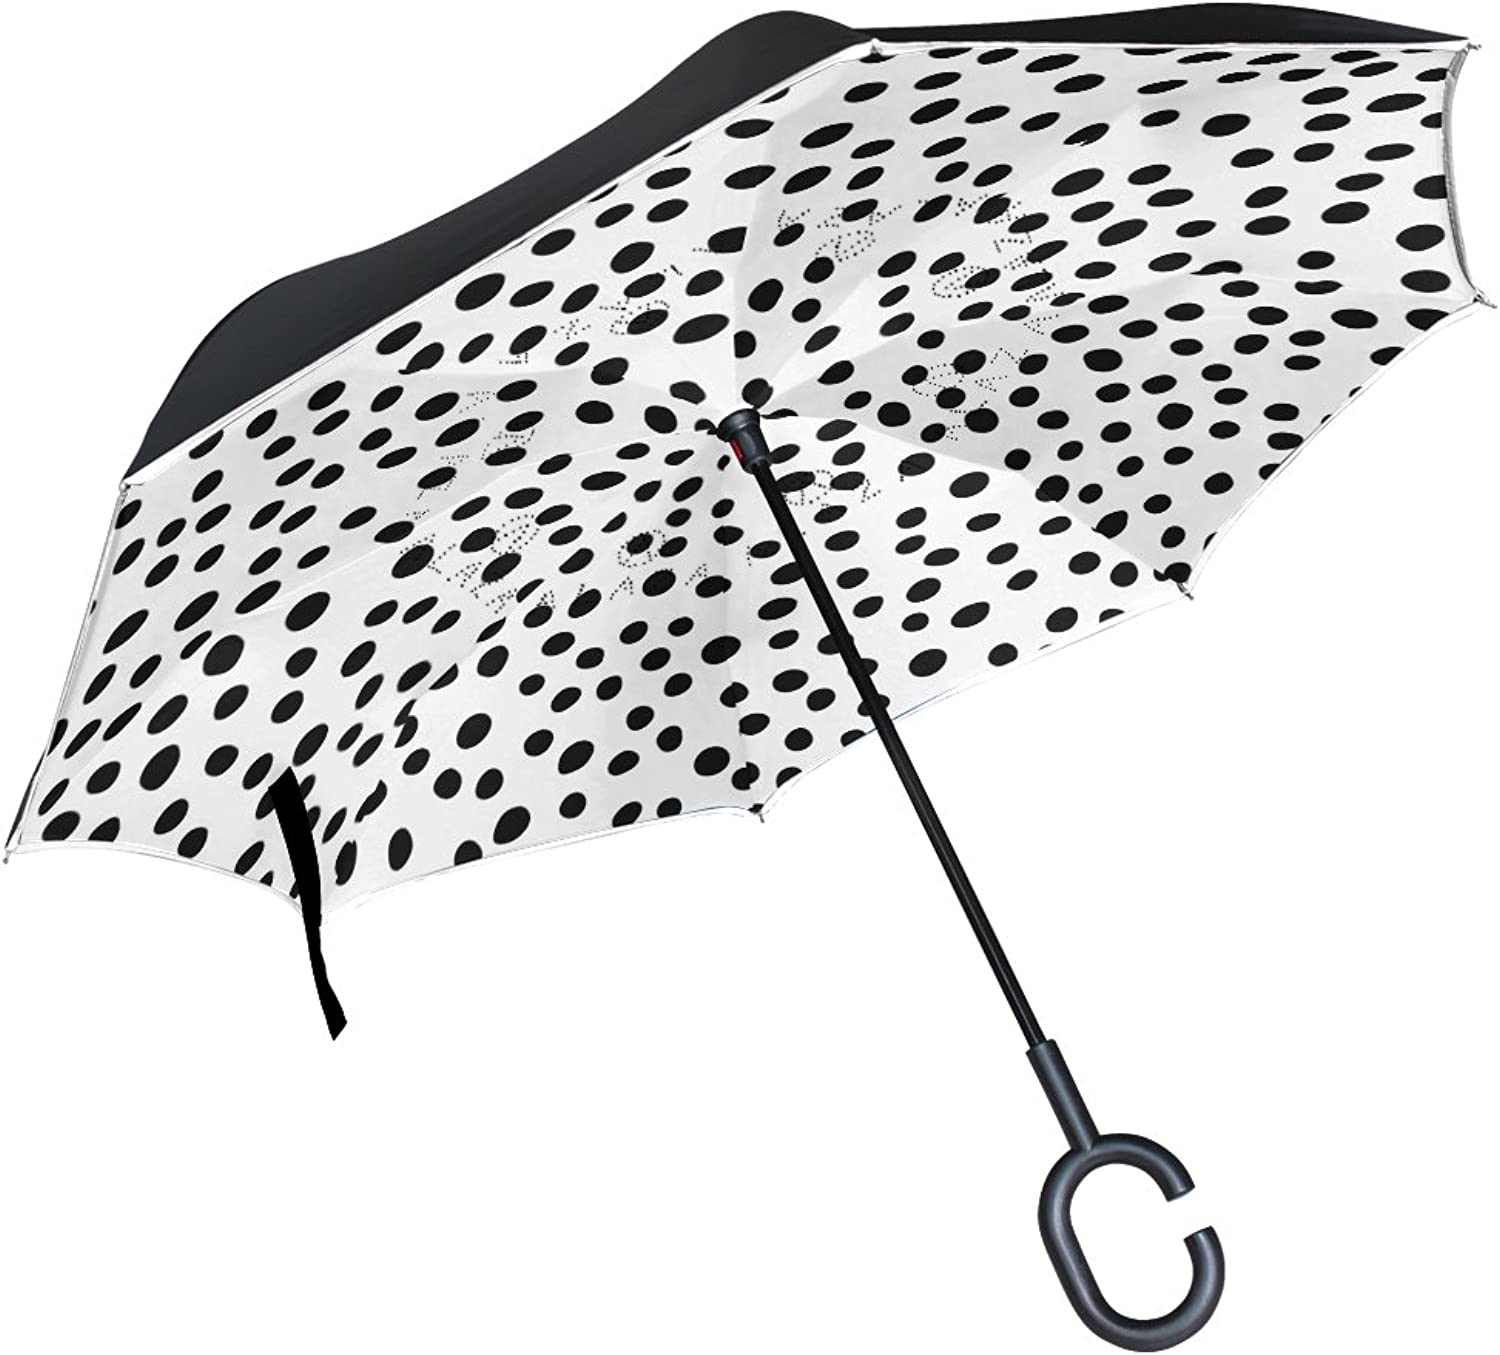 LEISISI Black and White Pattern with Dots Double Layer Ingreened Umbrella Reverse Auto Open Umbrella Windproof UV Predection Upside Down Umbrella for Car Rain Outdoor Use